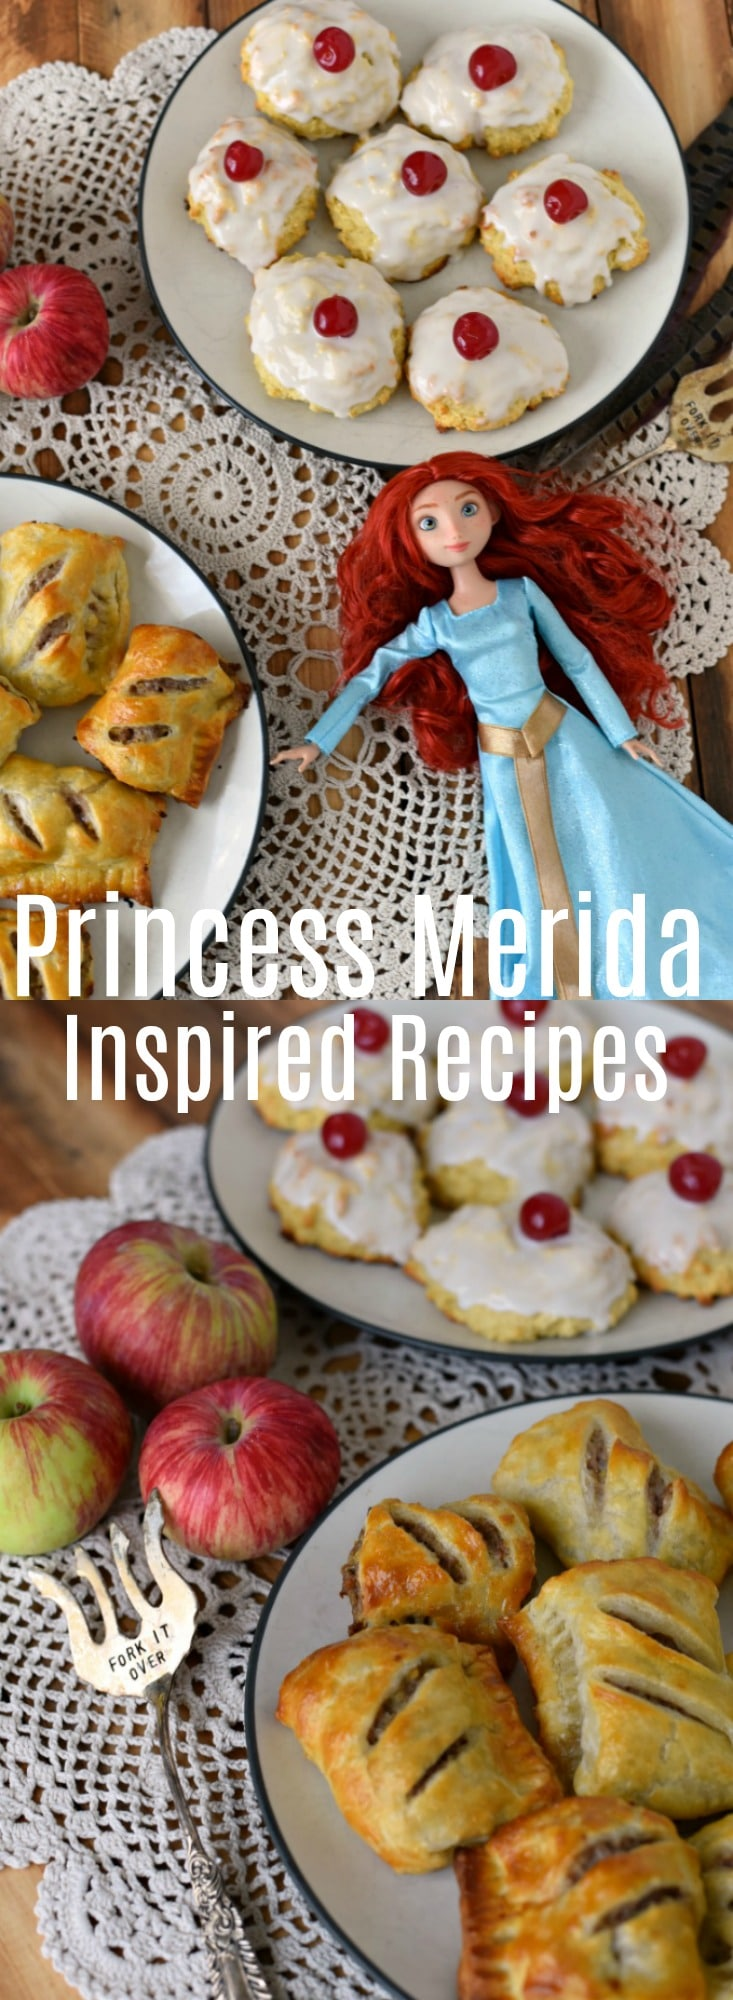 Easy Sausage Rolls - Princess Merida Recipe - Eat Like A Princess - These easy sausage rolls and empire biscuits make the perfect meal for a feast inspired by Princess Merida